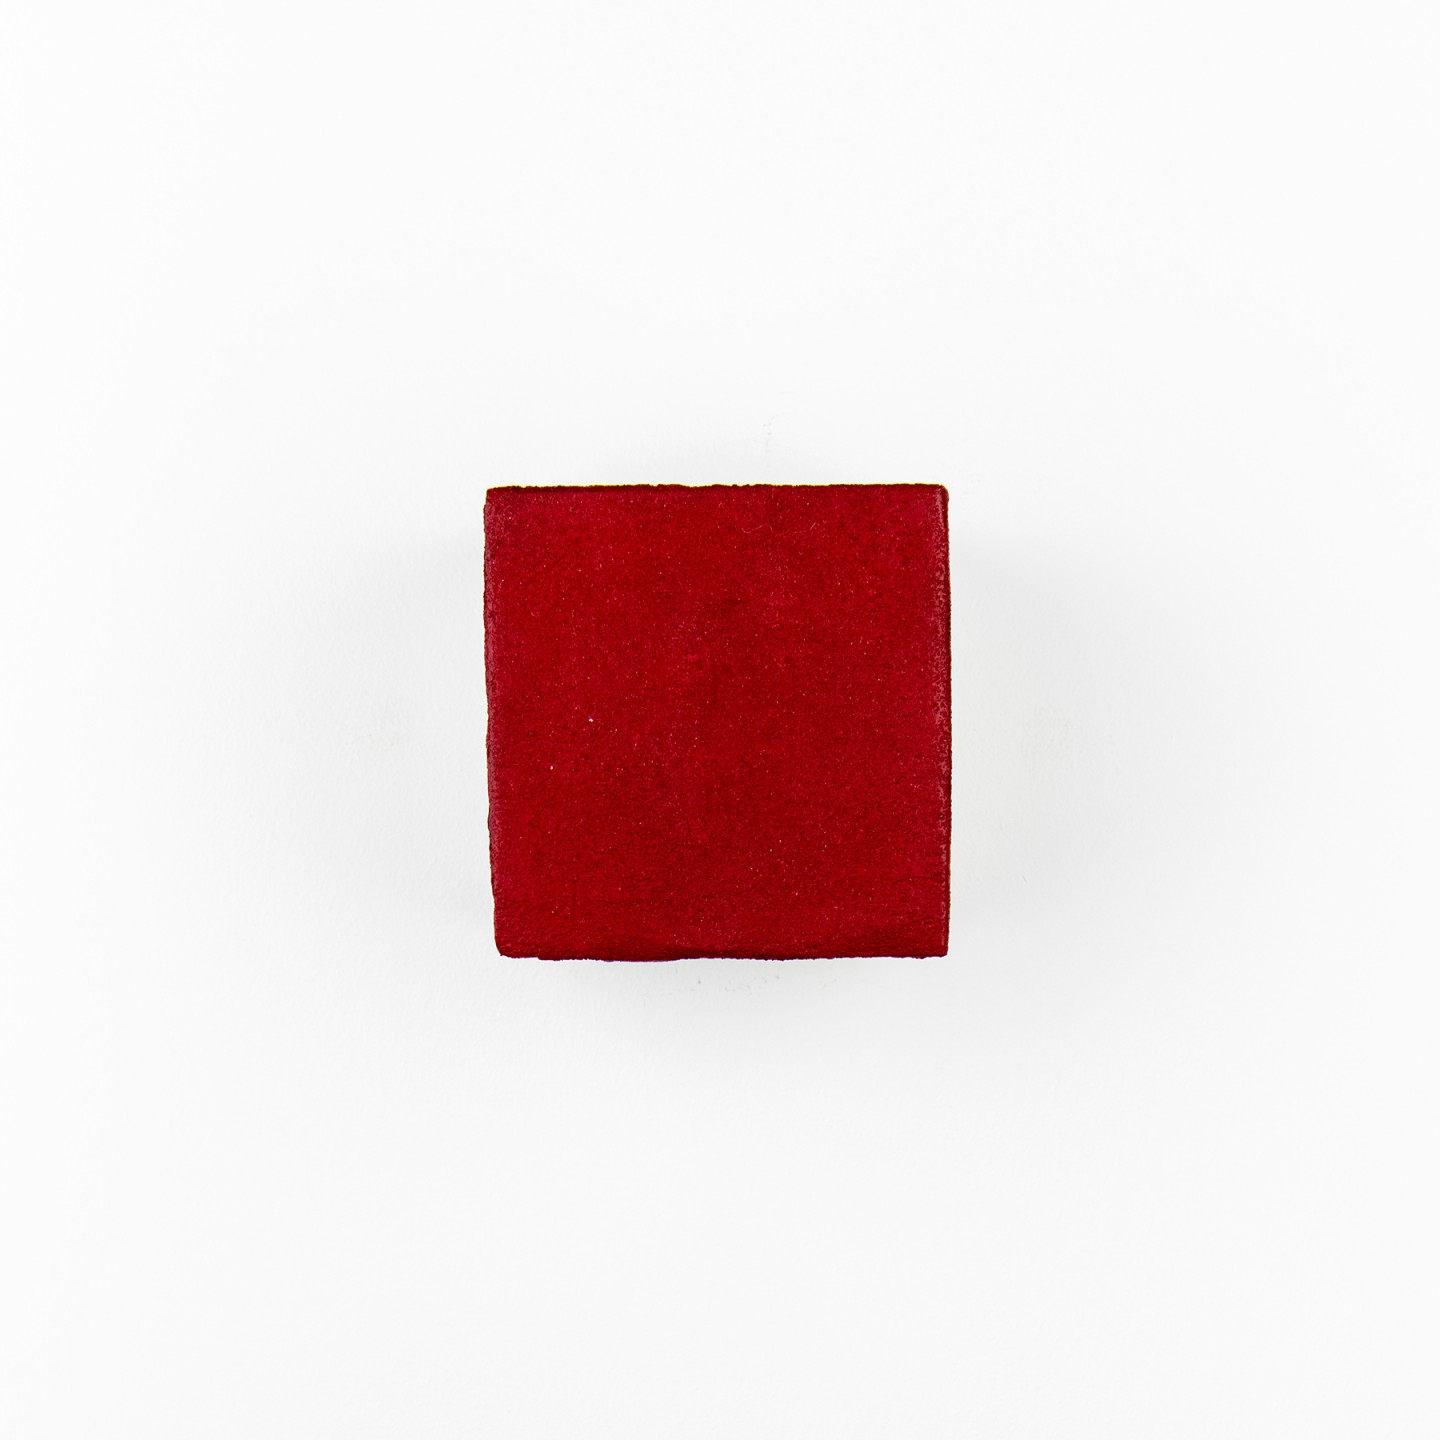 The Cube Red 02